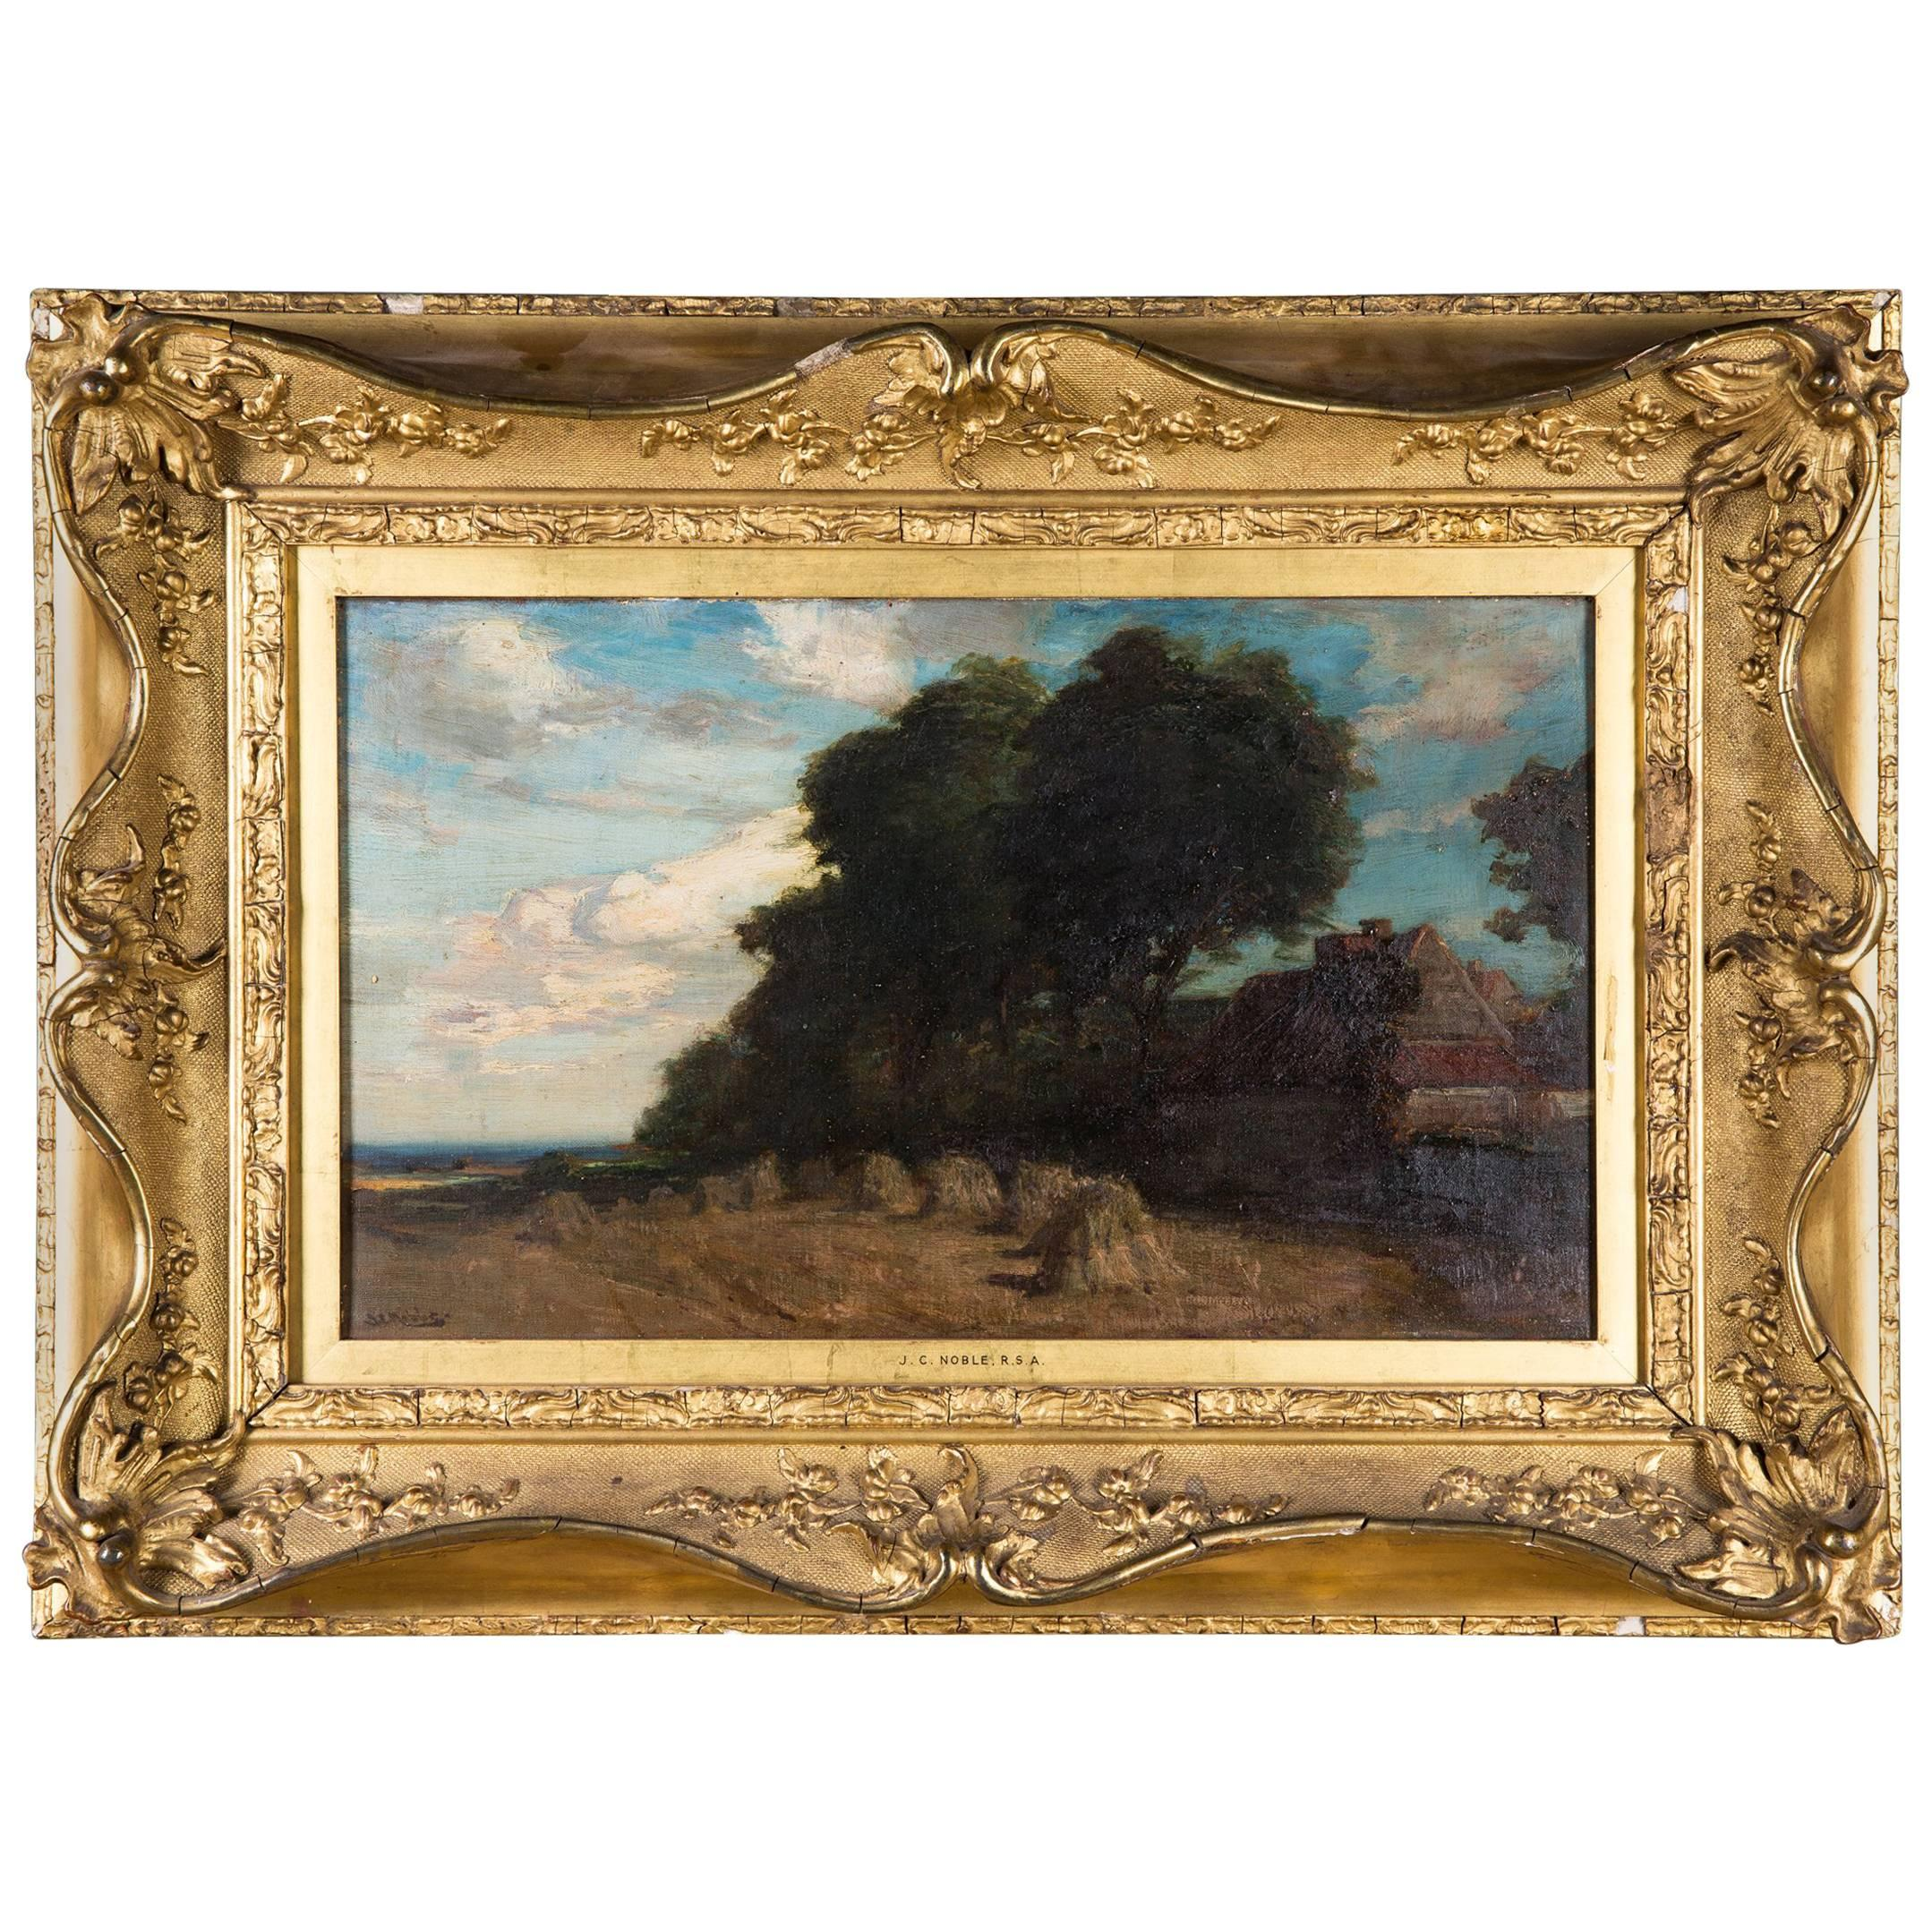 Original Oil Painting Landscape by James Campbell, 1846-1913